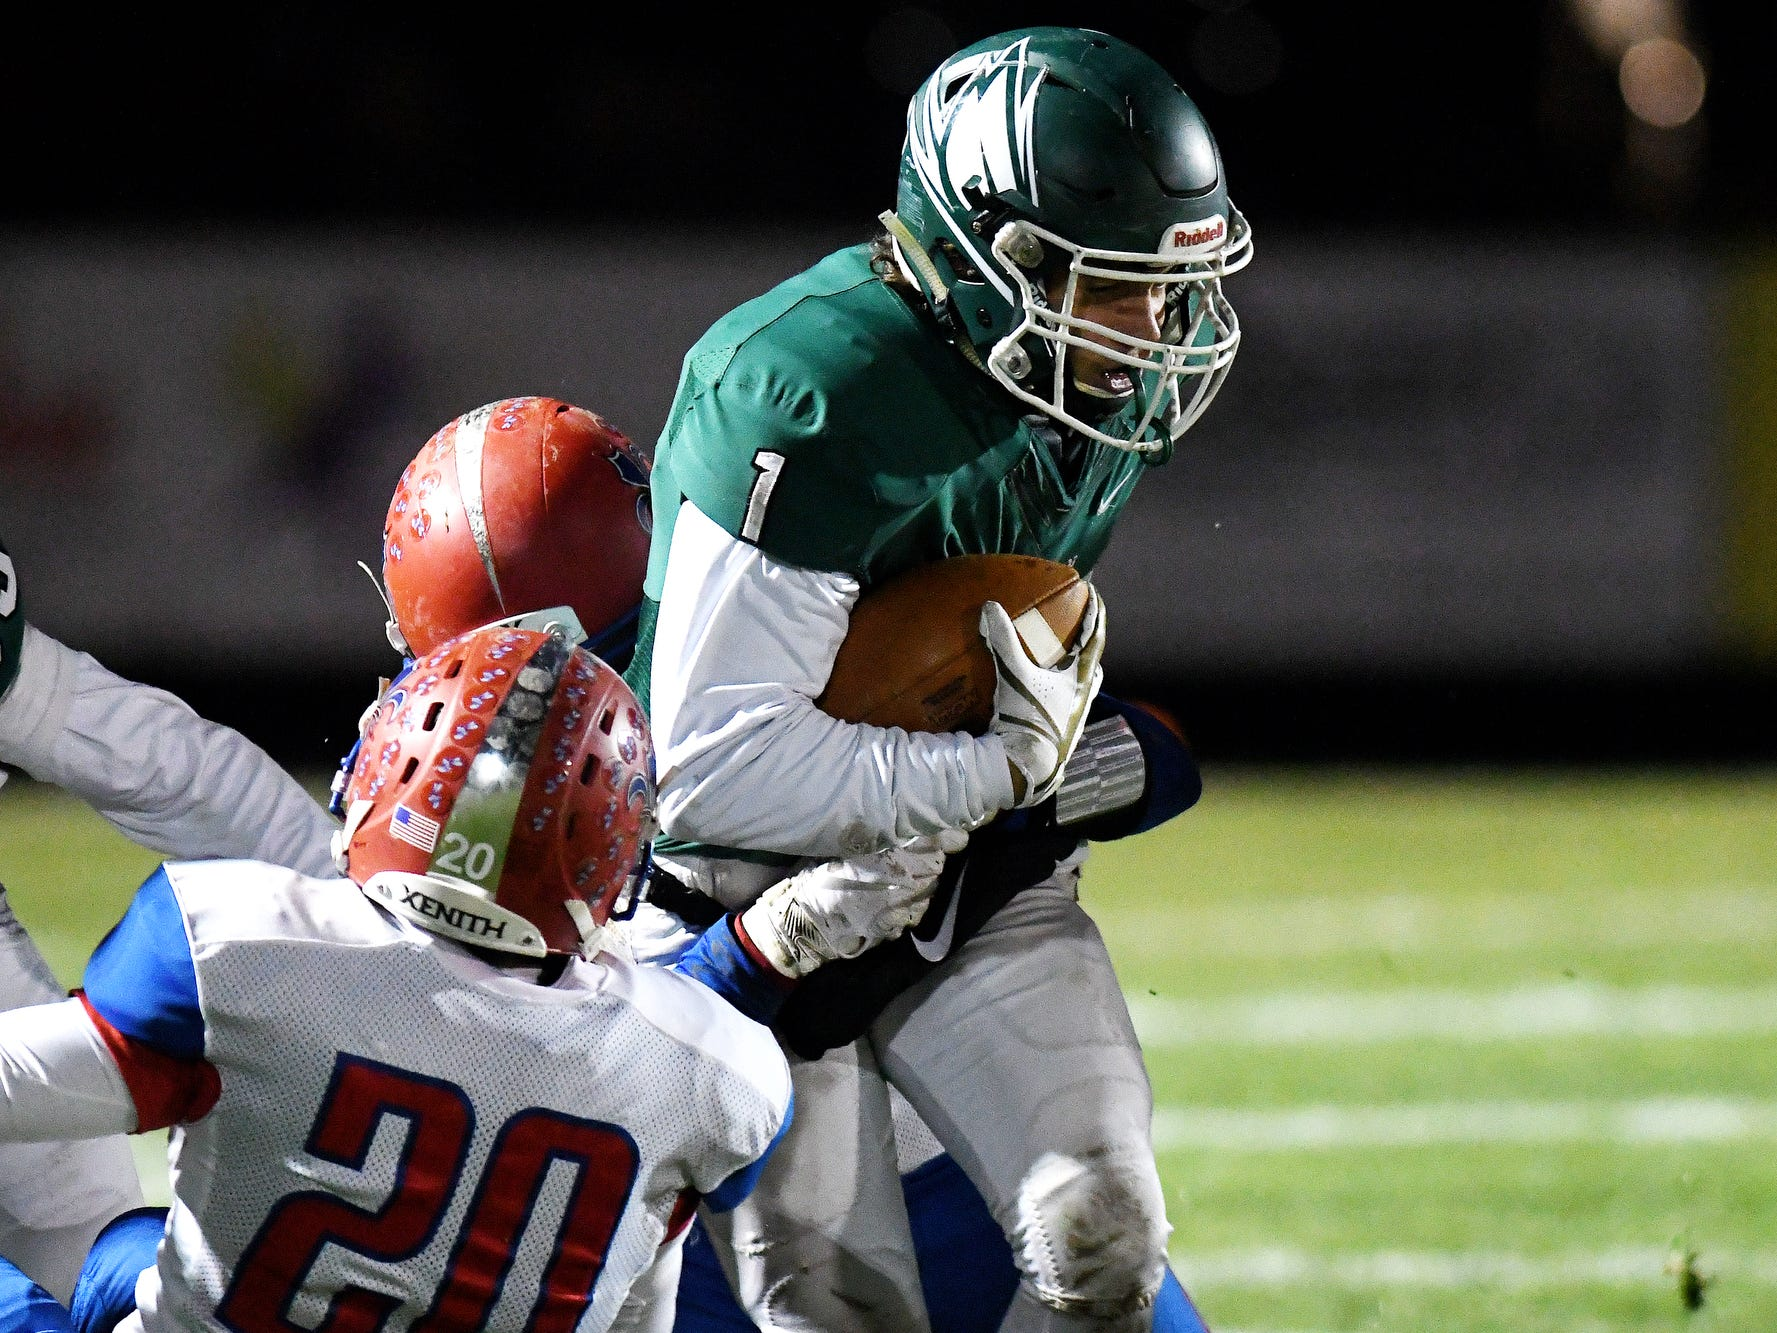 Williamston's Carey Haney is tackled at the end of a run during the second quarter on Friday, Nov. 9, 2018, in Williamston. Williamston defeated St. Clair 28-0 to advance to the state semi-finals.